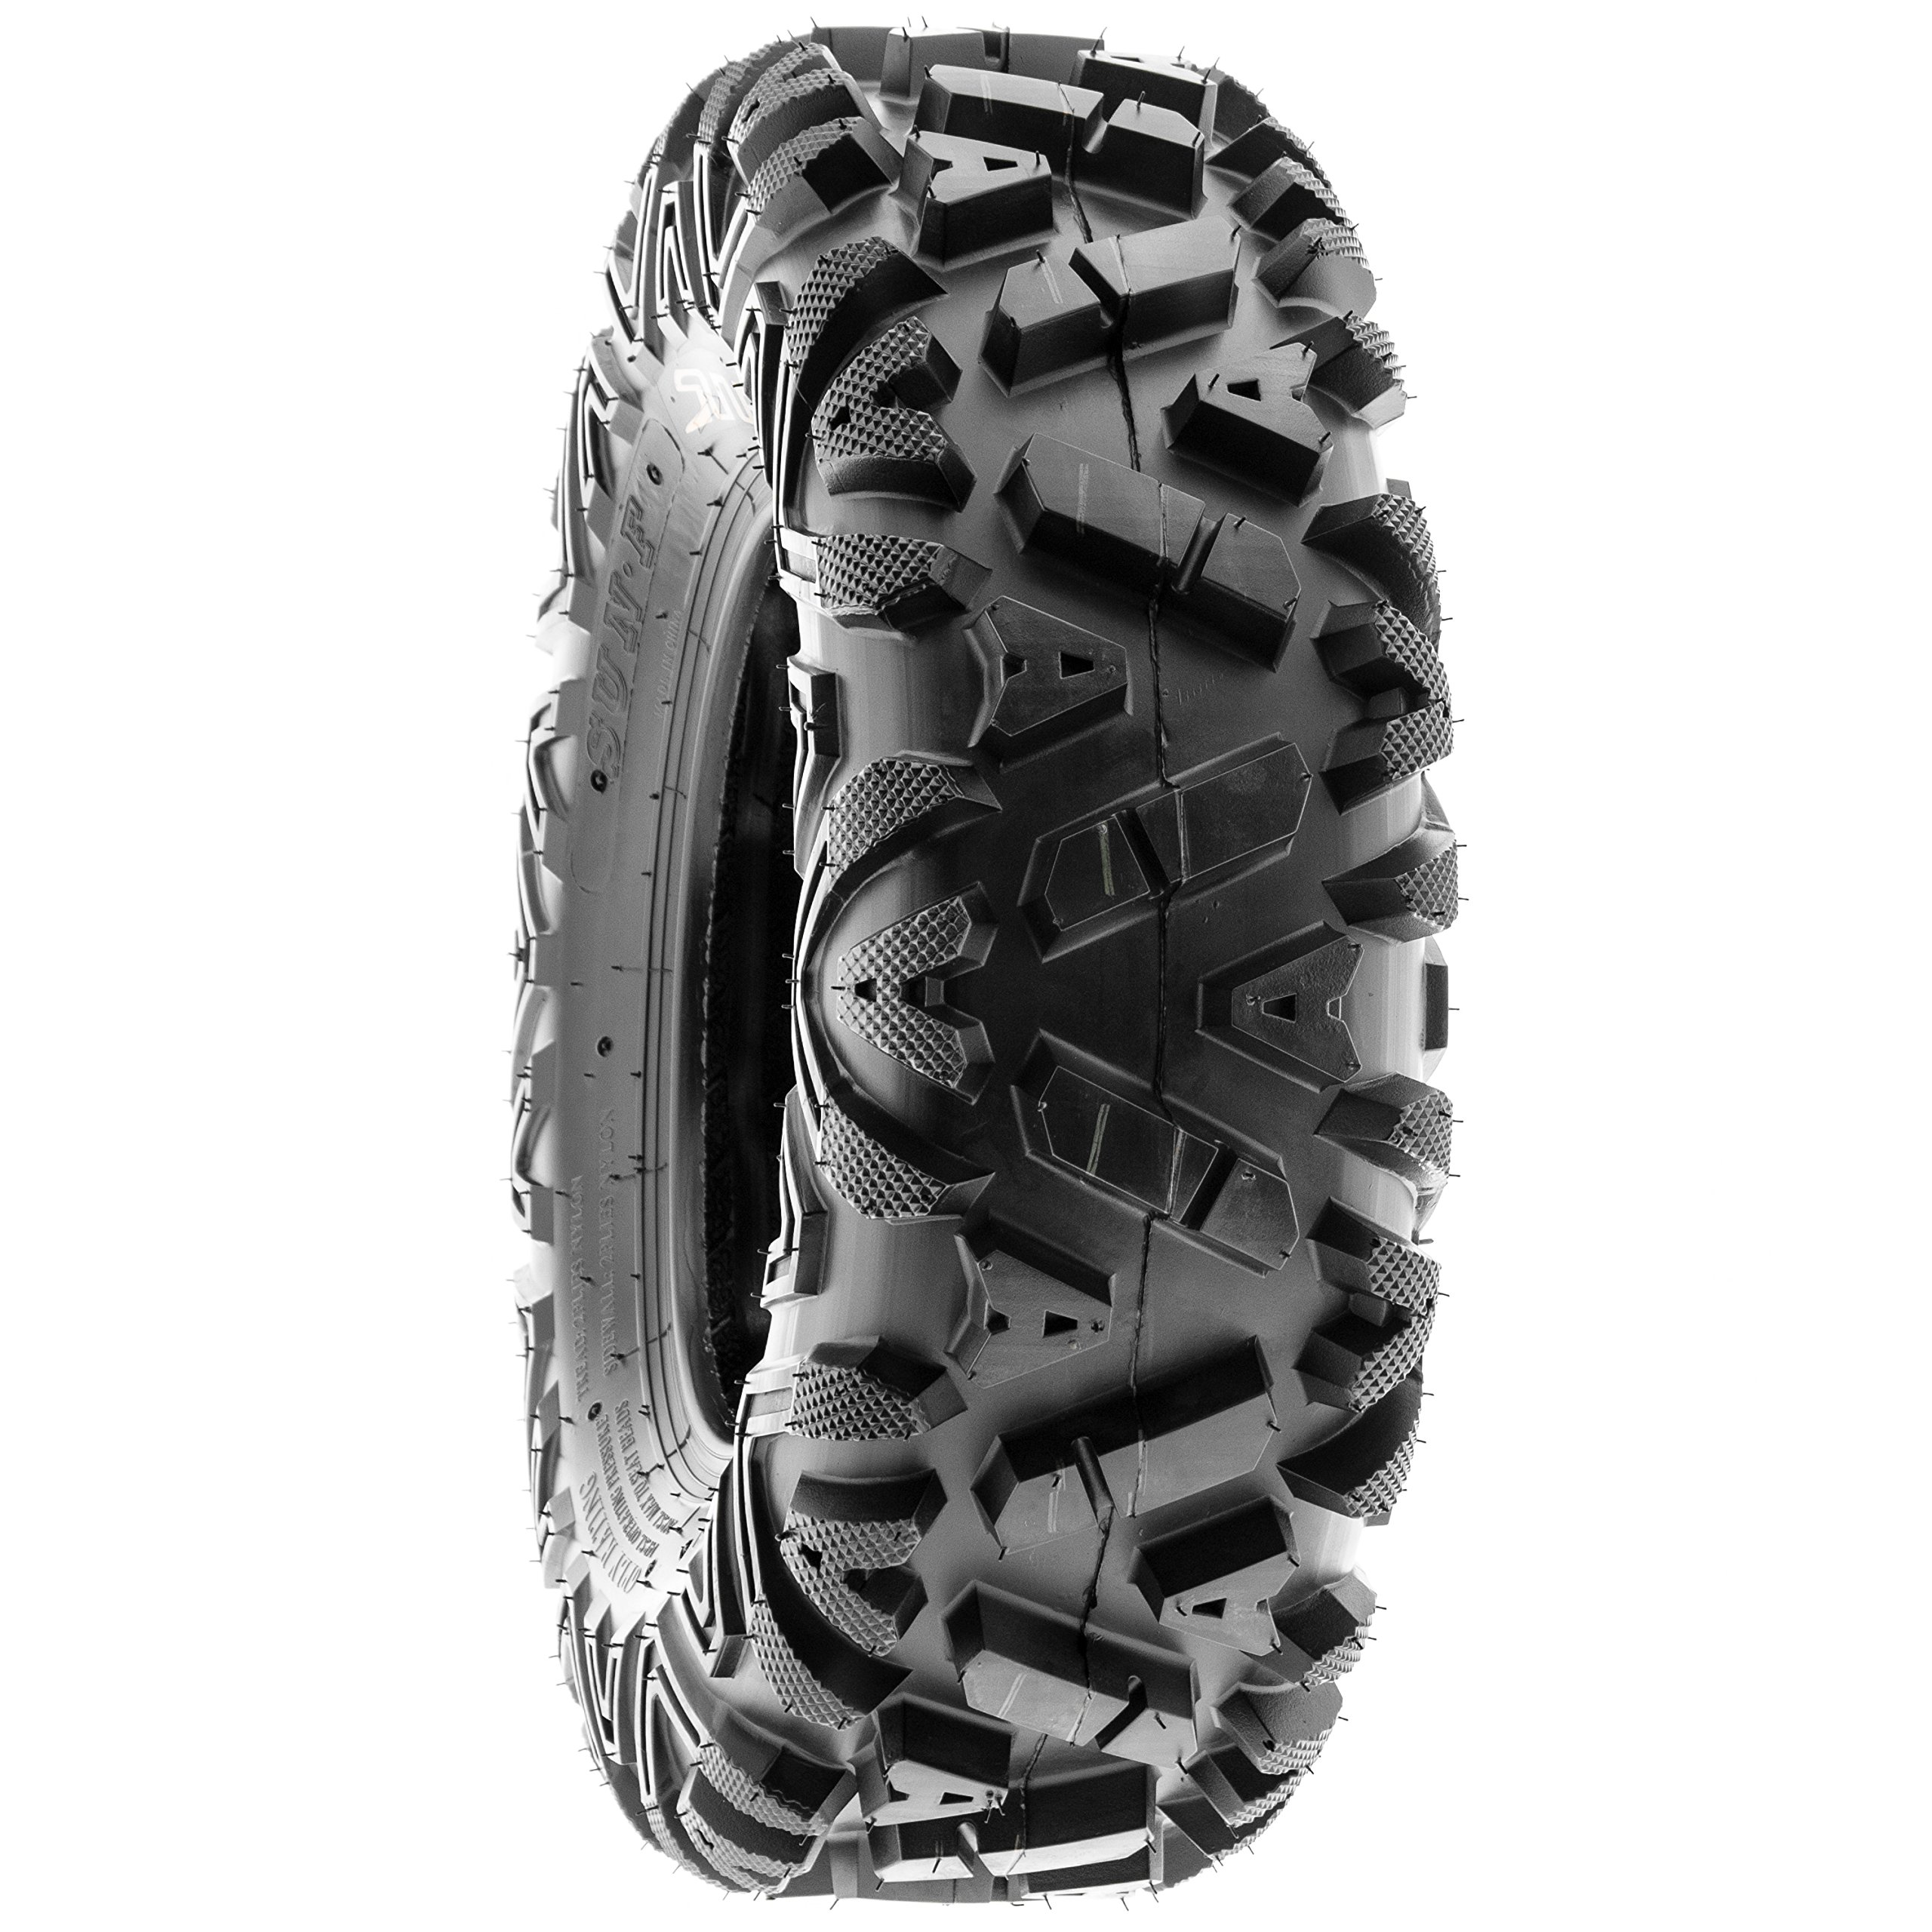 SunF 29x9-14 29x9x14 ATV UTV All Terrain AT Tire 6 PR A033 (Single) by SunF (Image #10)